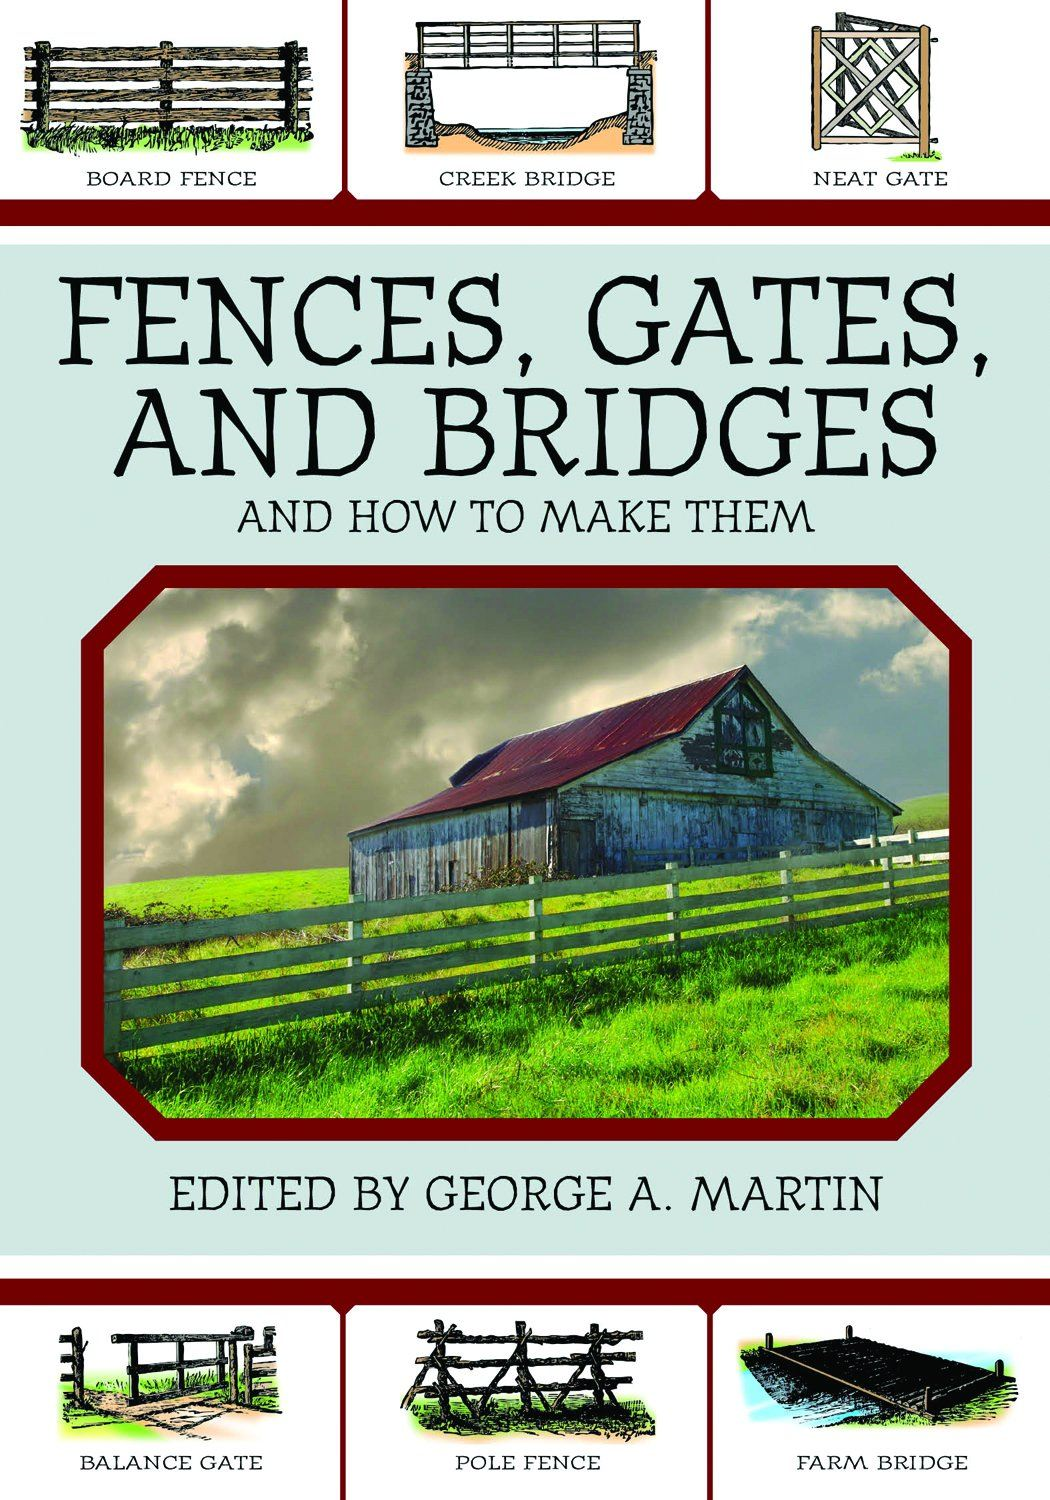 Fences, Gates, and Bridges: And How to Make Them By: George A. Martin